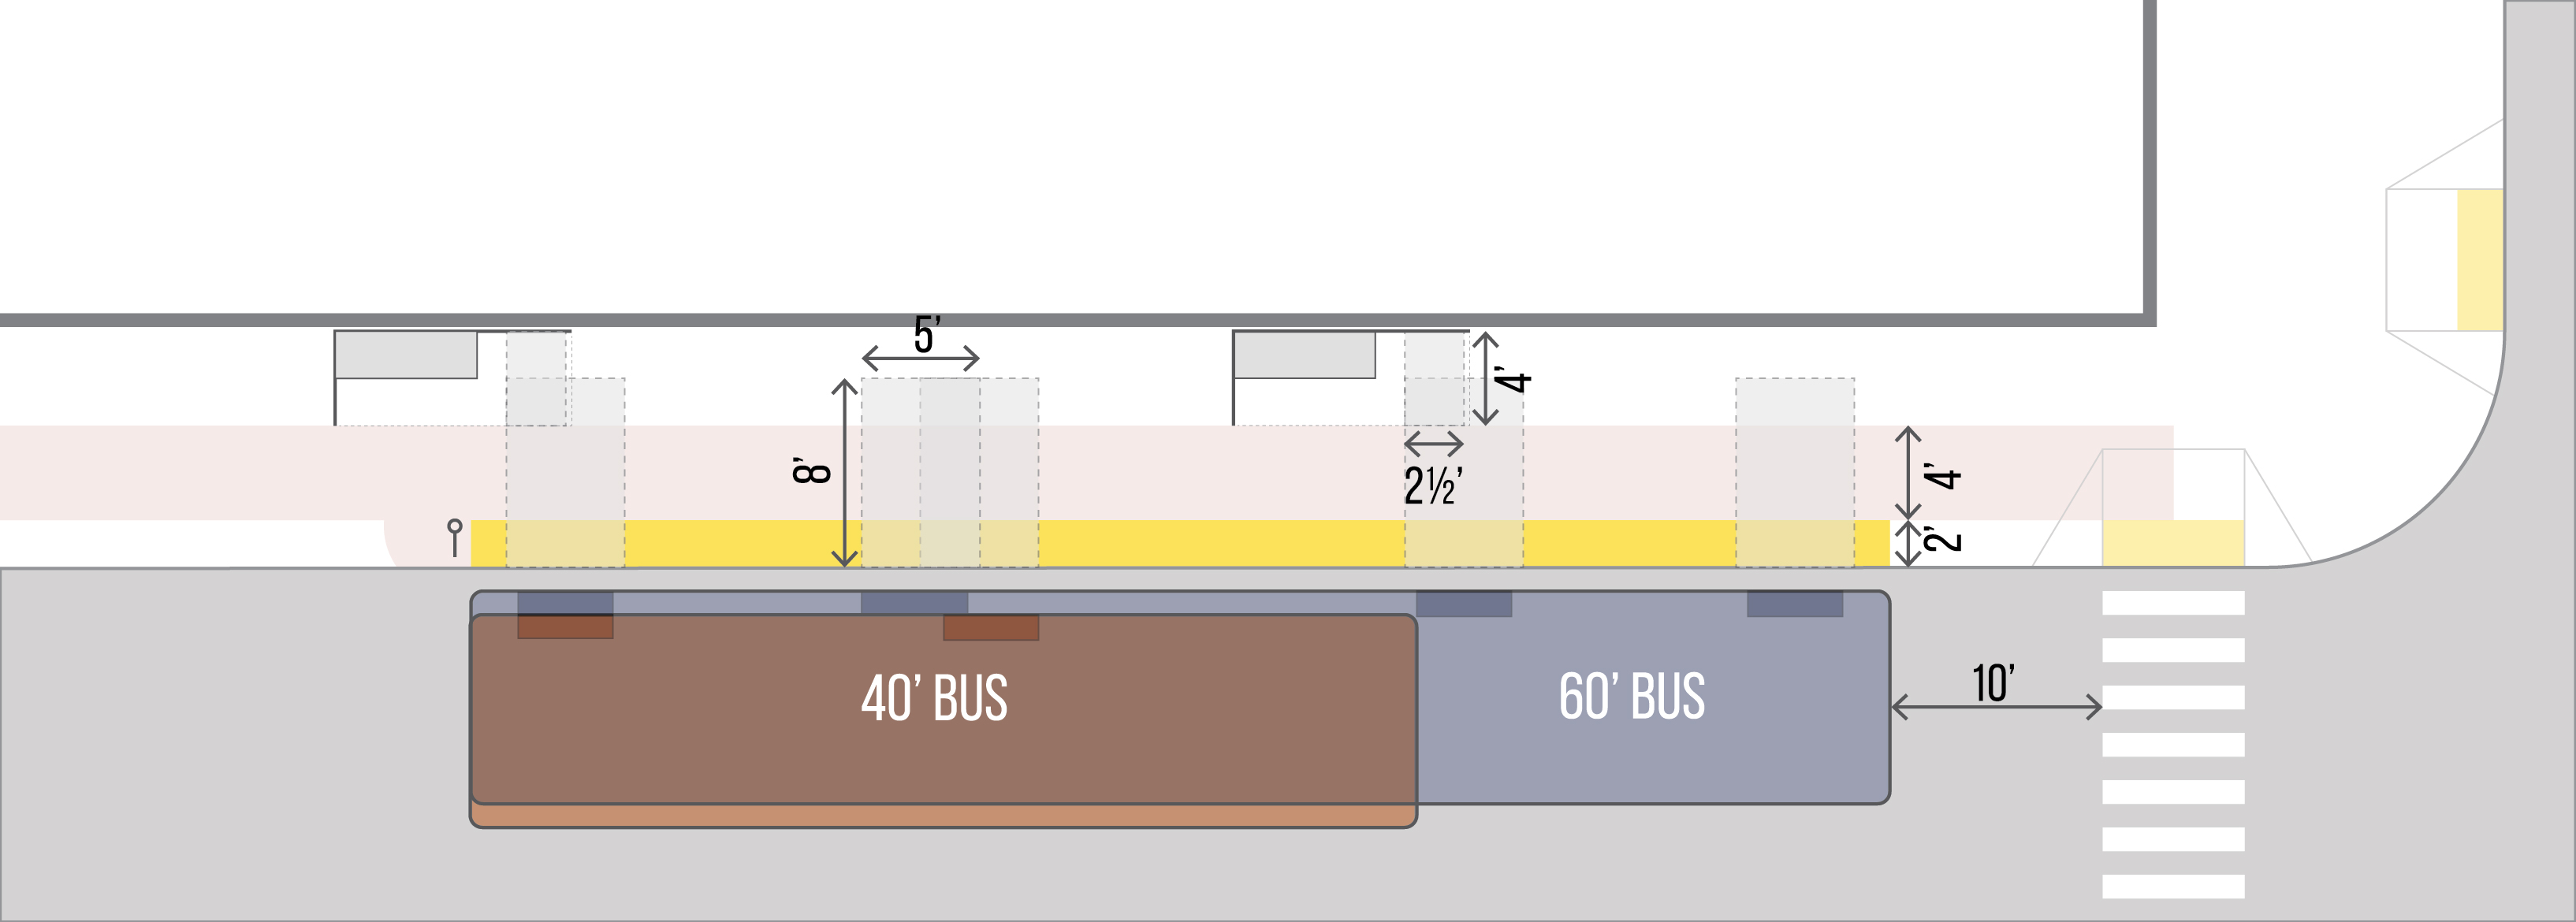 Shelter placement diagrams-04